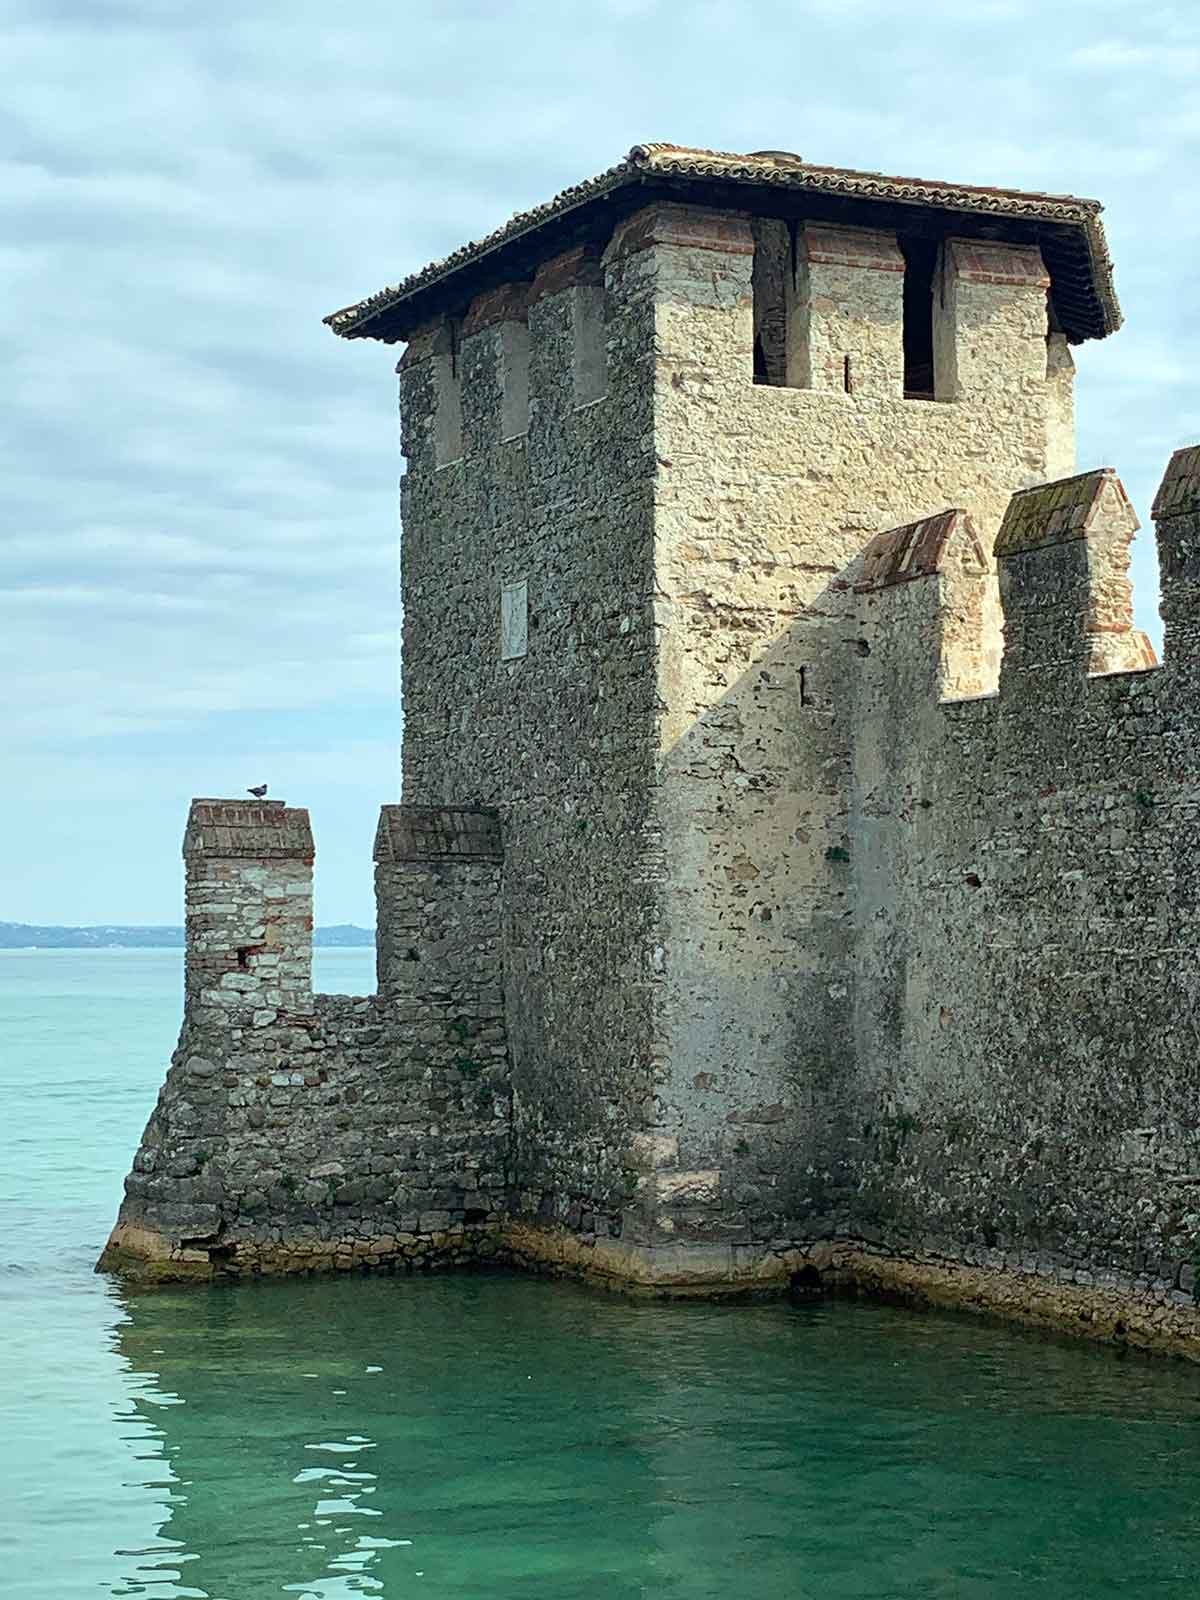 Bird on a tower of Sirmione Castle in Lake Garda, Italy